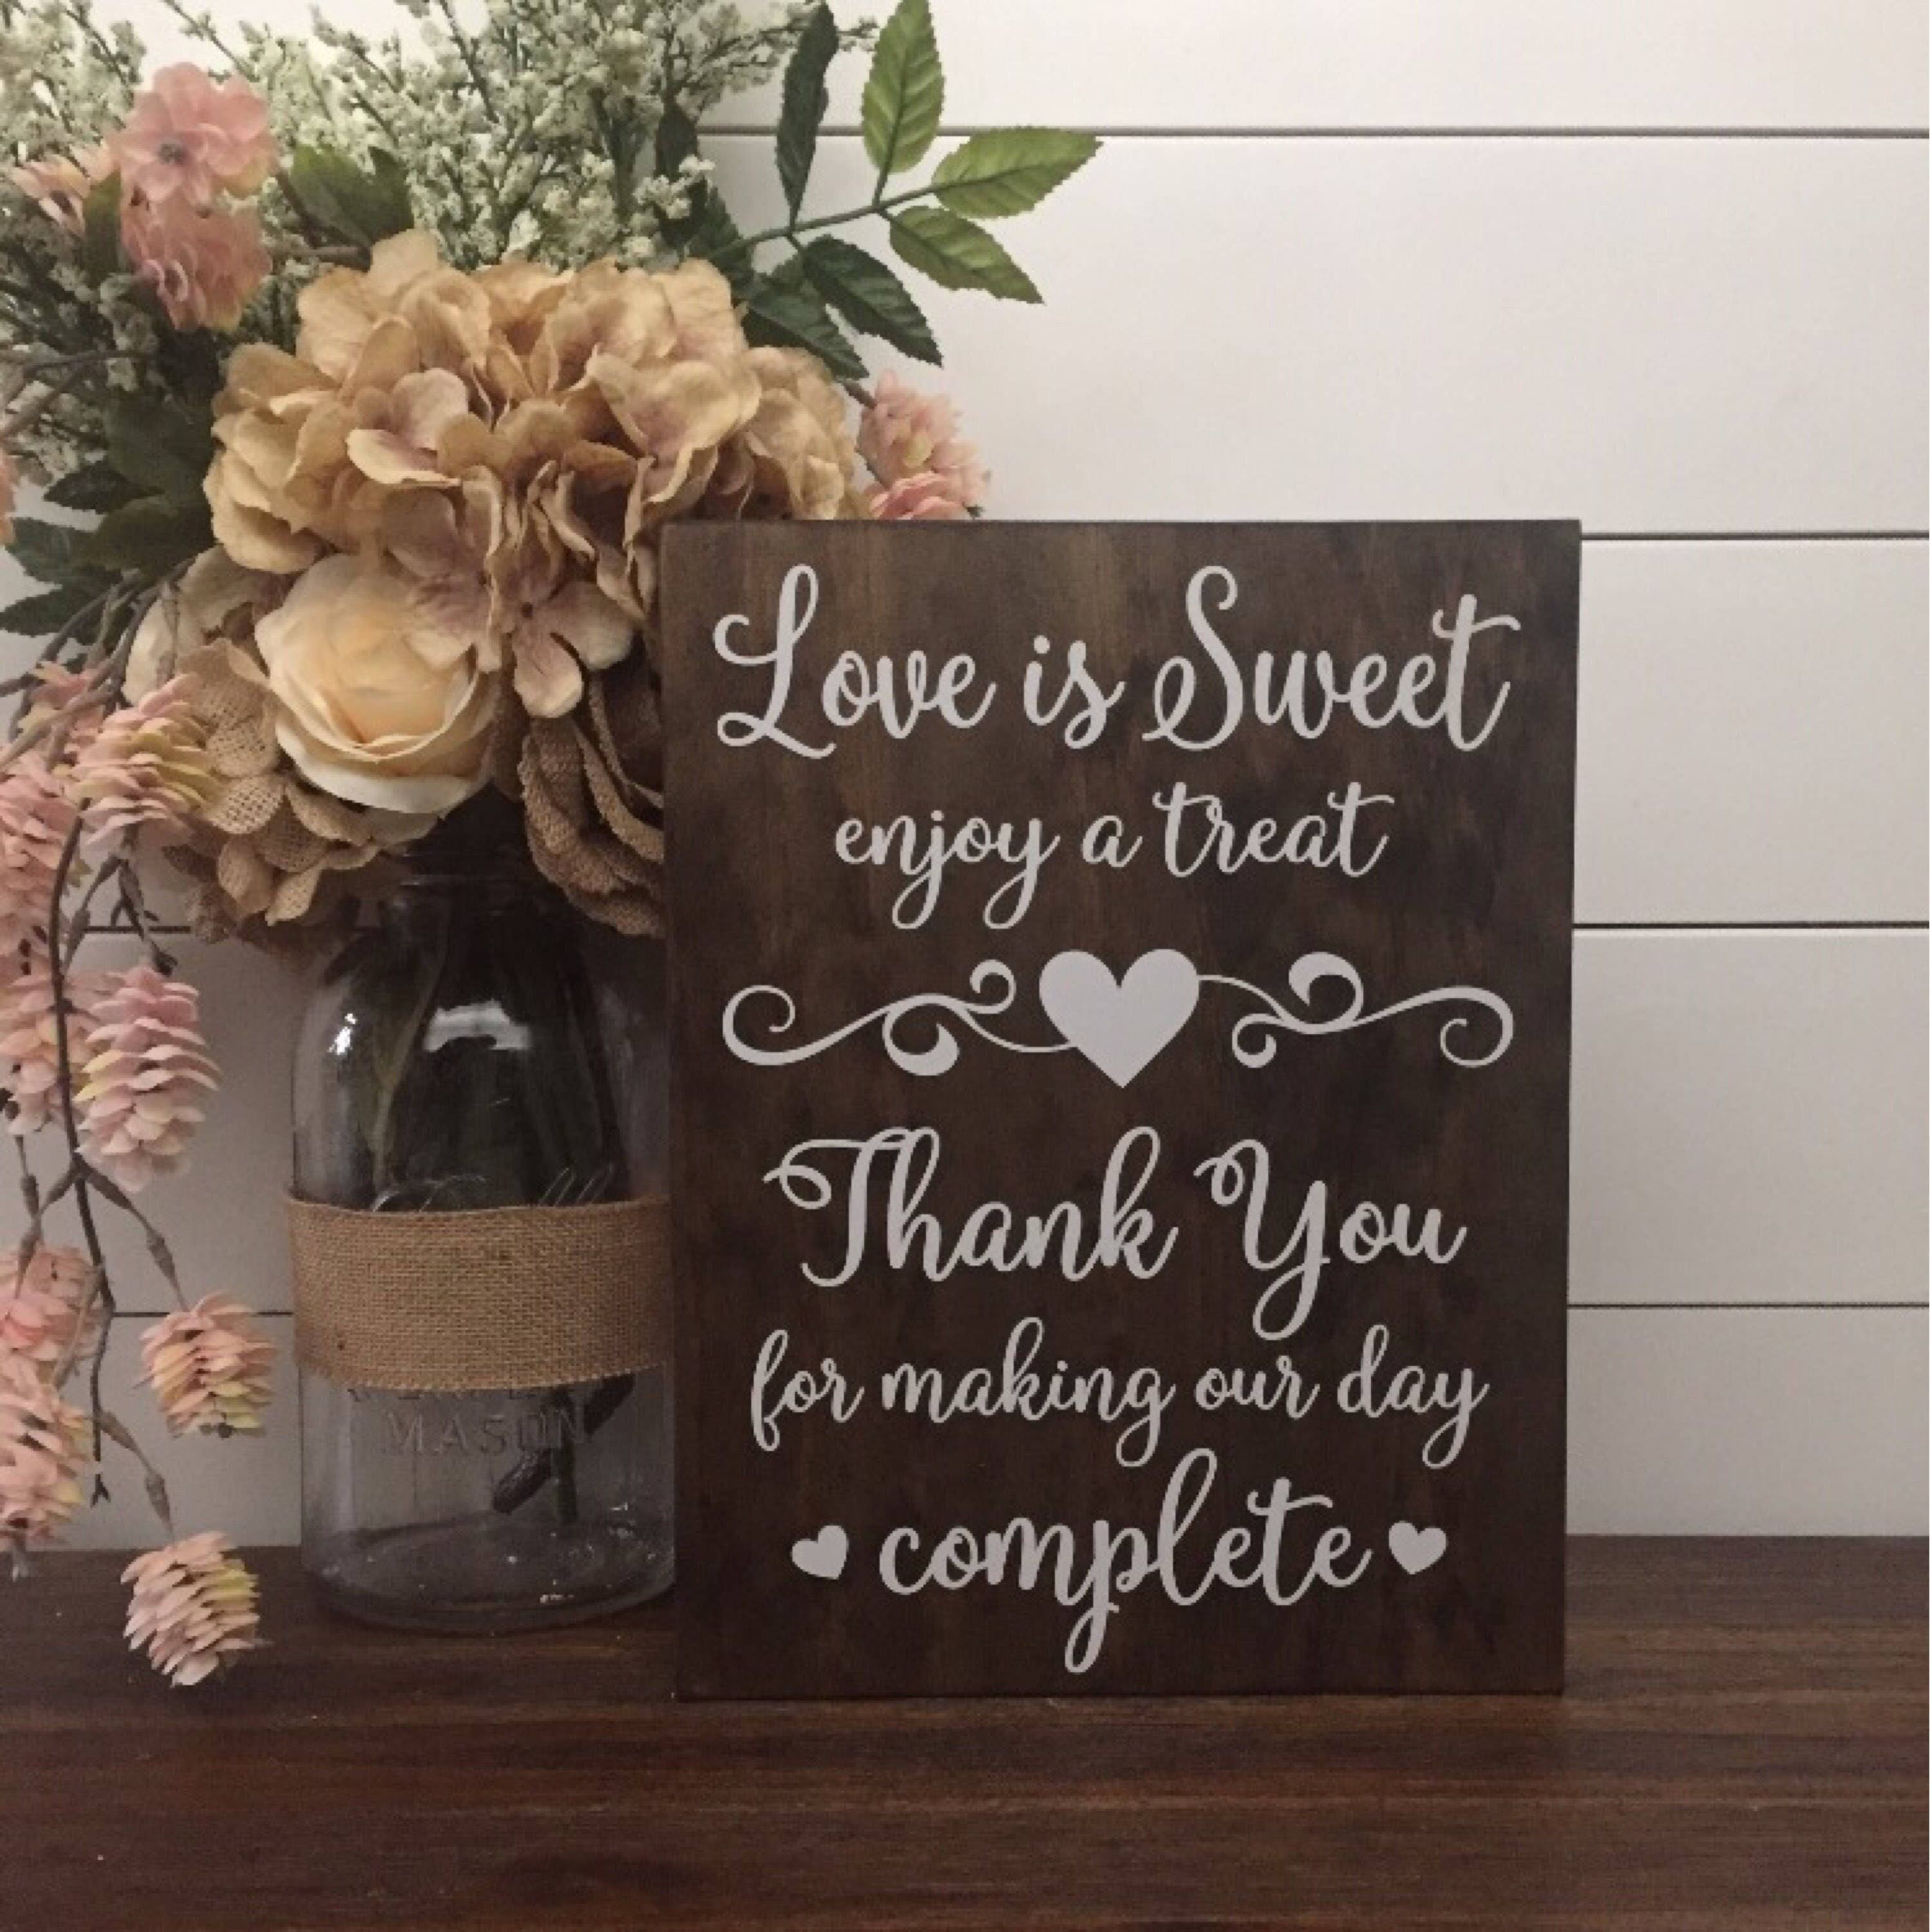 Love Is Søde Nyd A Treat Sign, Wedding Table Sign-3807